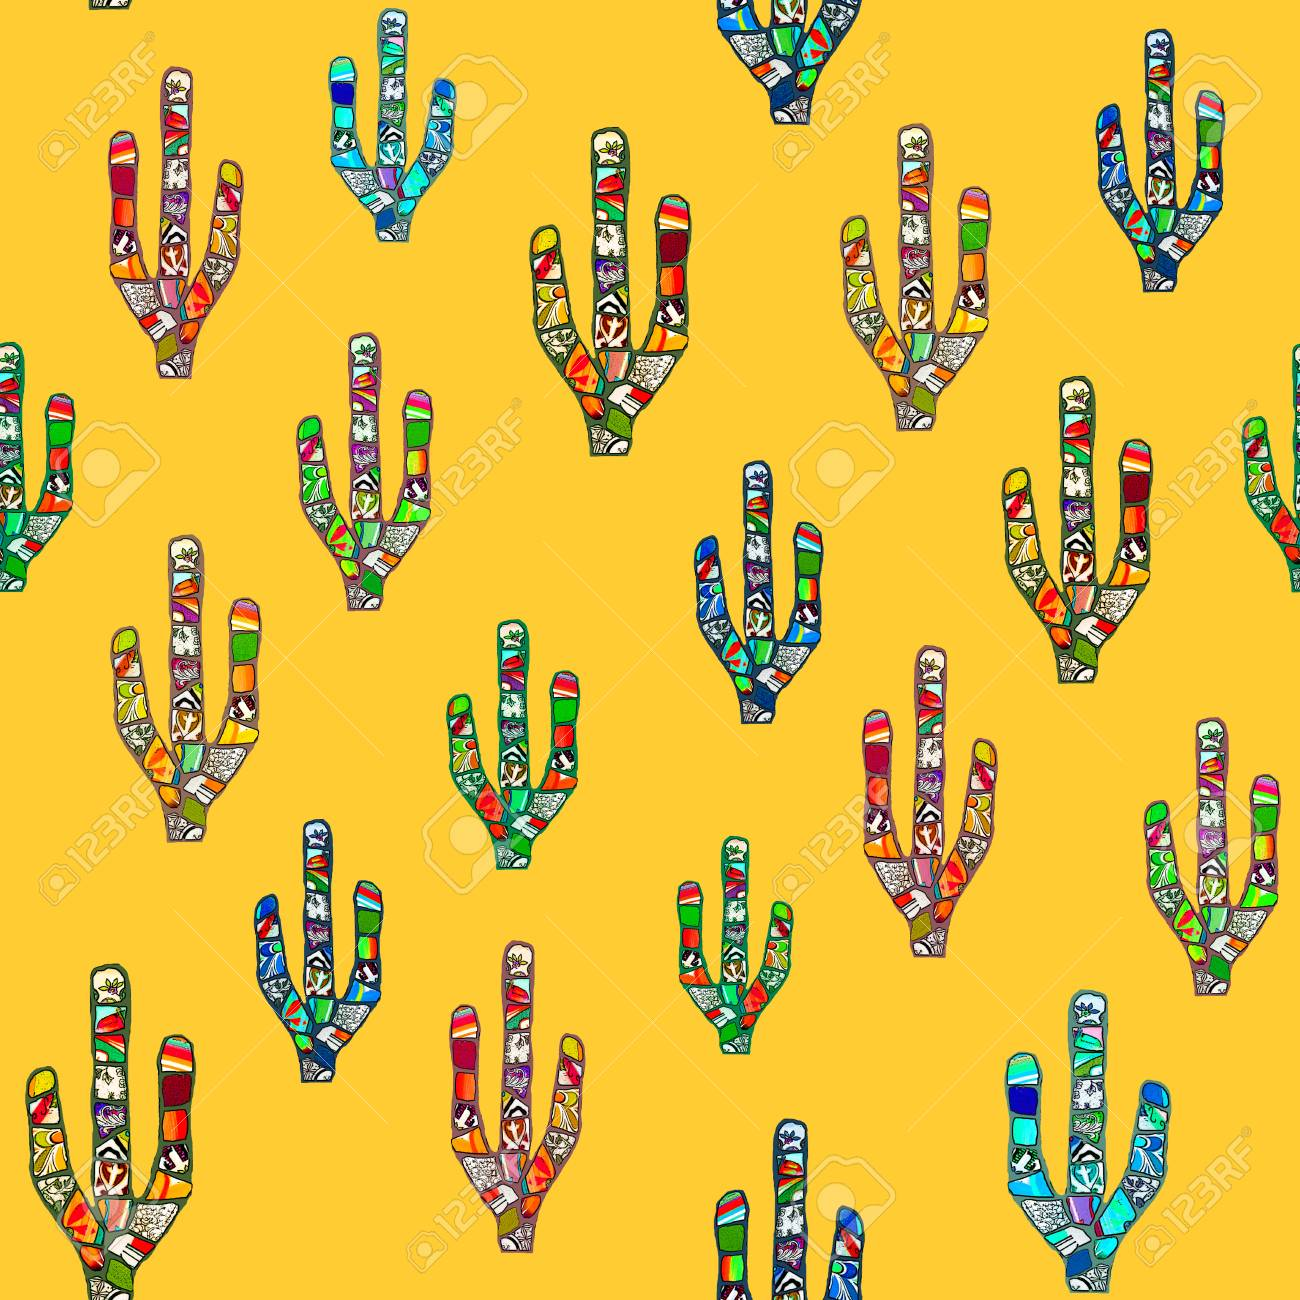 Seamless Colorful Abstract Mosaic Cacti Pattern On A Yellow Background